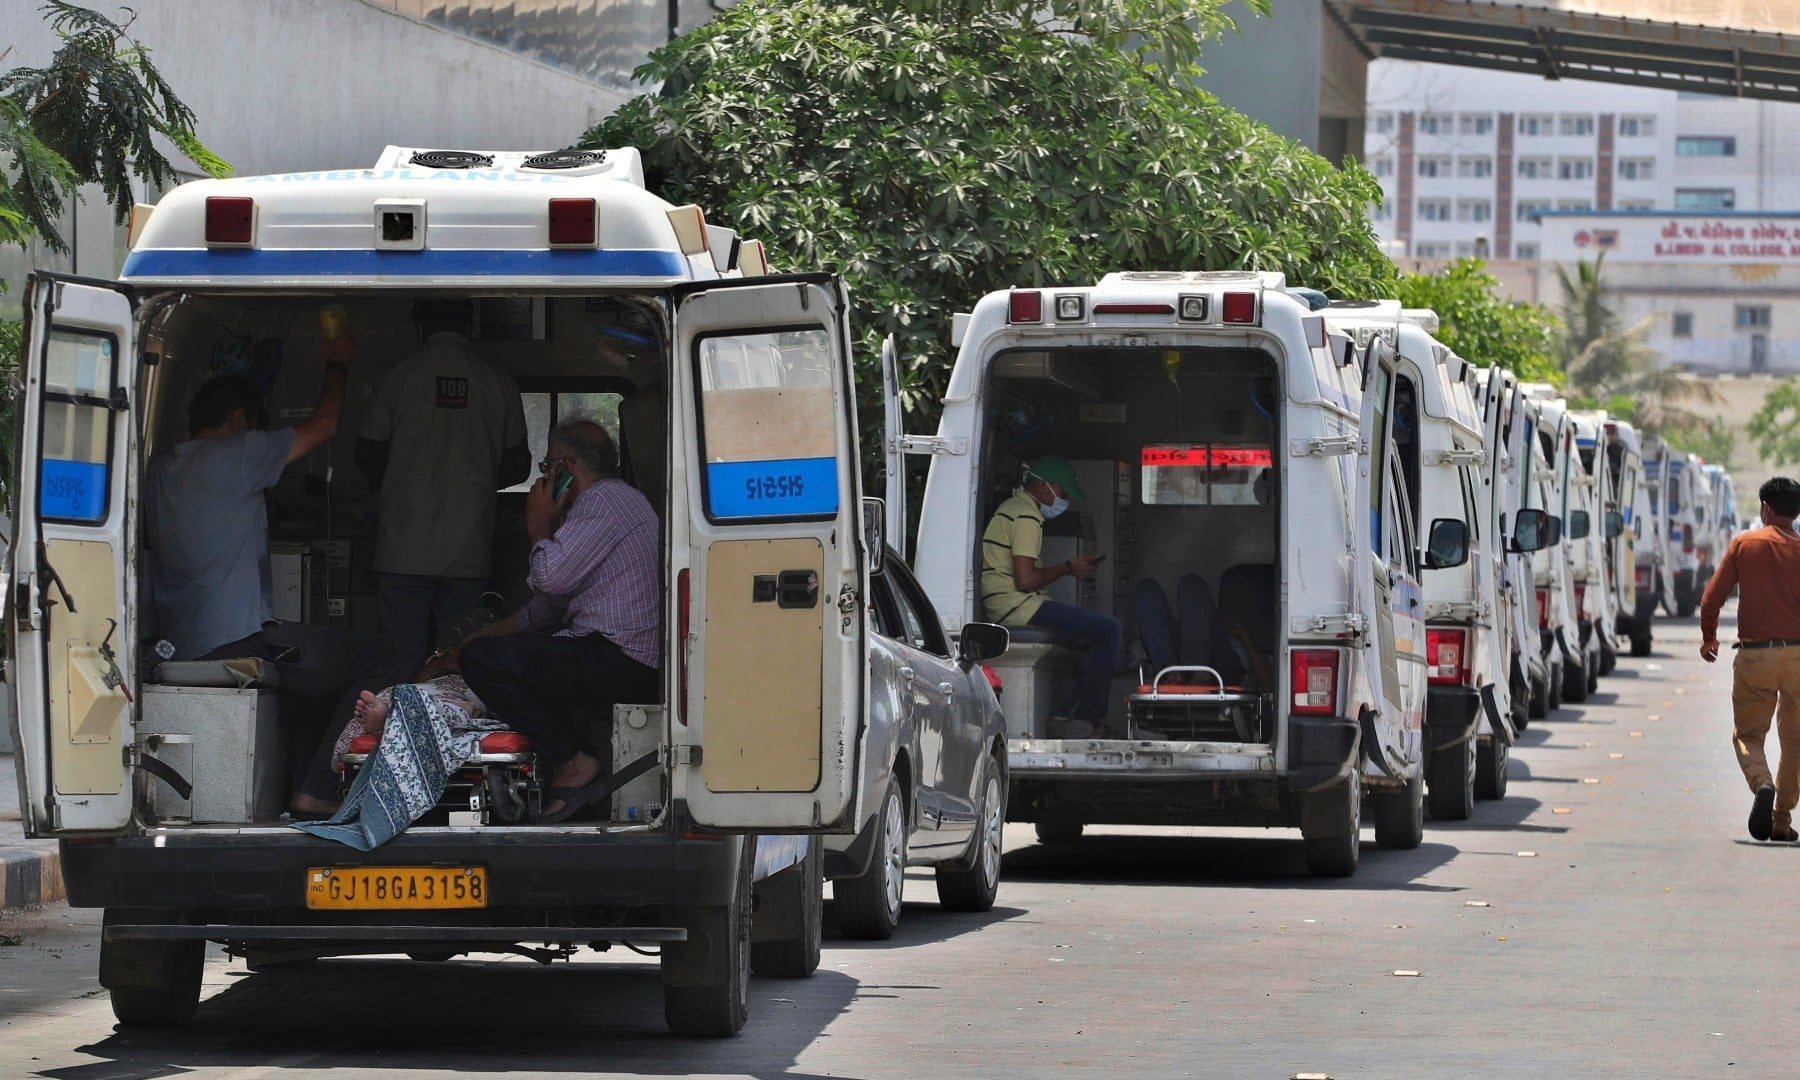 Ambulances carrying Covid-19 patients line up waiting for their turn to be attended to at a dedicated Covid-19 government hospital in Ahmedabad on April 22. — AP